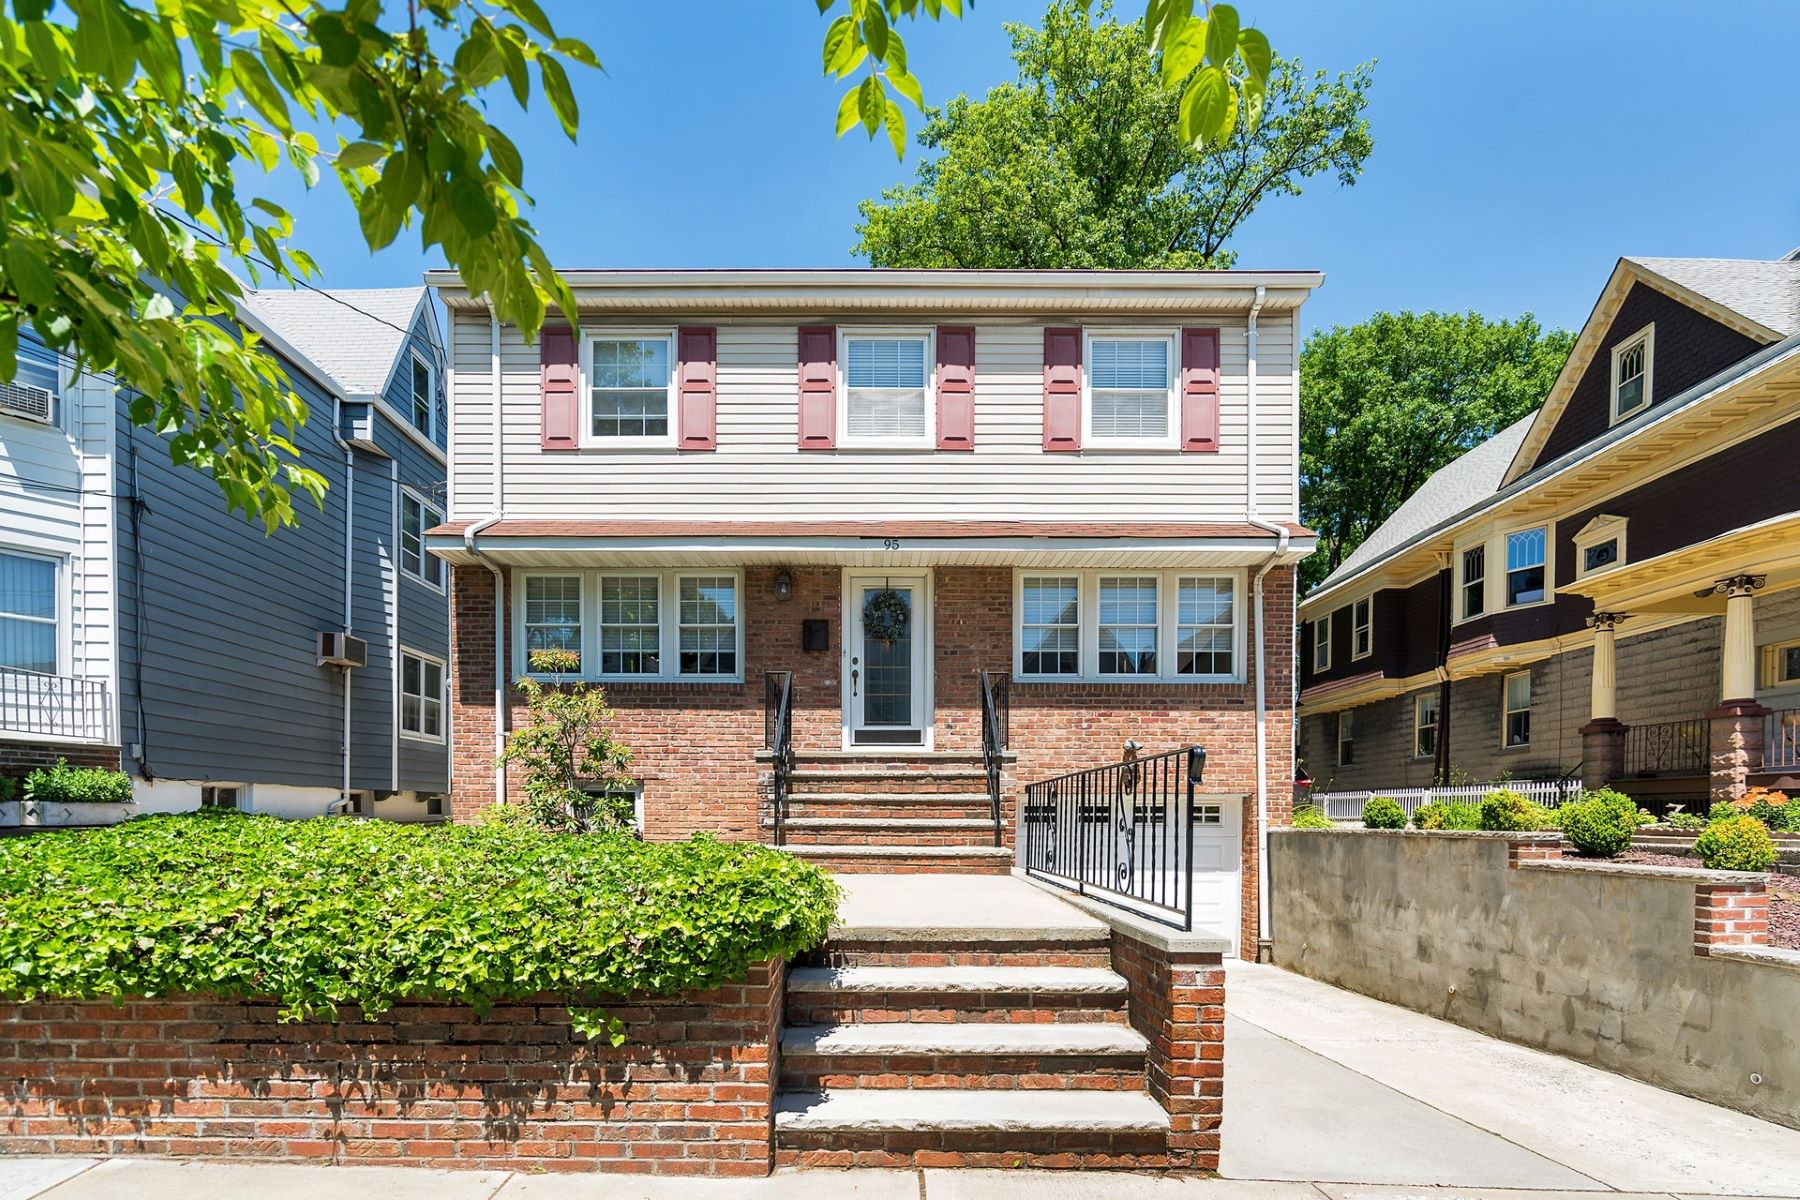 一戸建て のために 売買 アット The spacious, fully renovated Colonial style home is a must see! 93-95 West 30th Street, Bayonne, ニュージャージー 07002 アメリカ合衆国